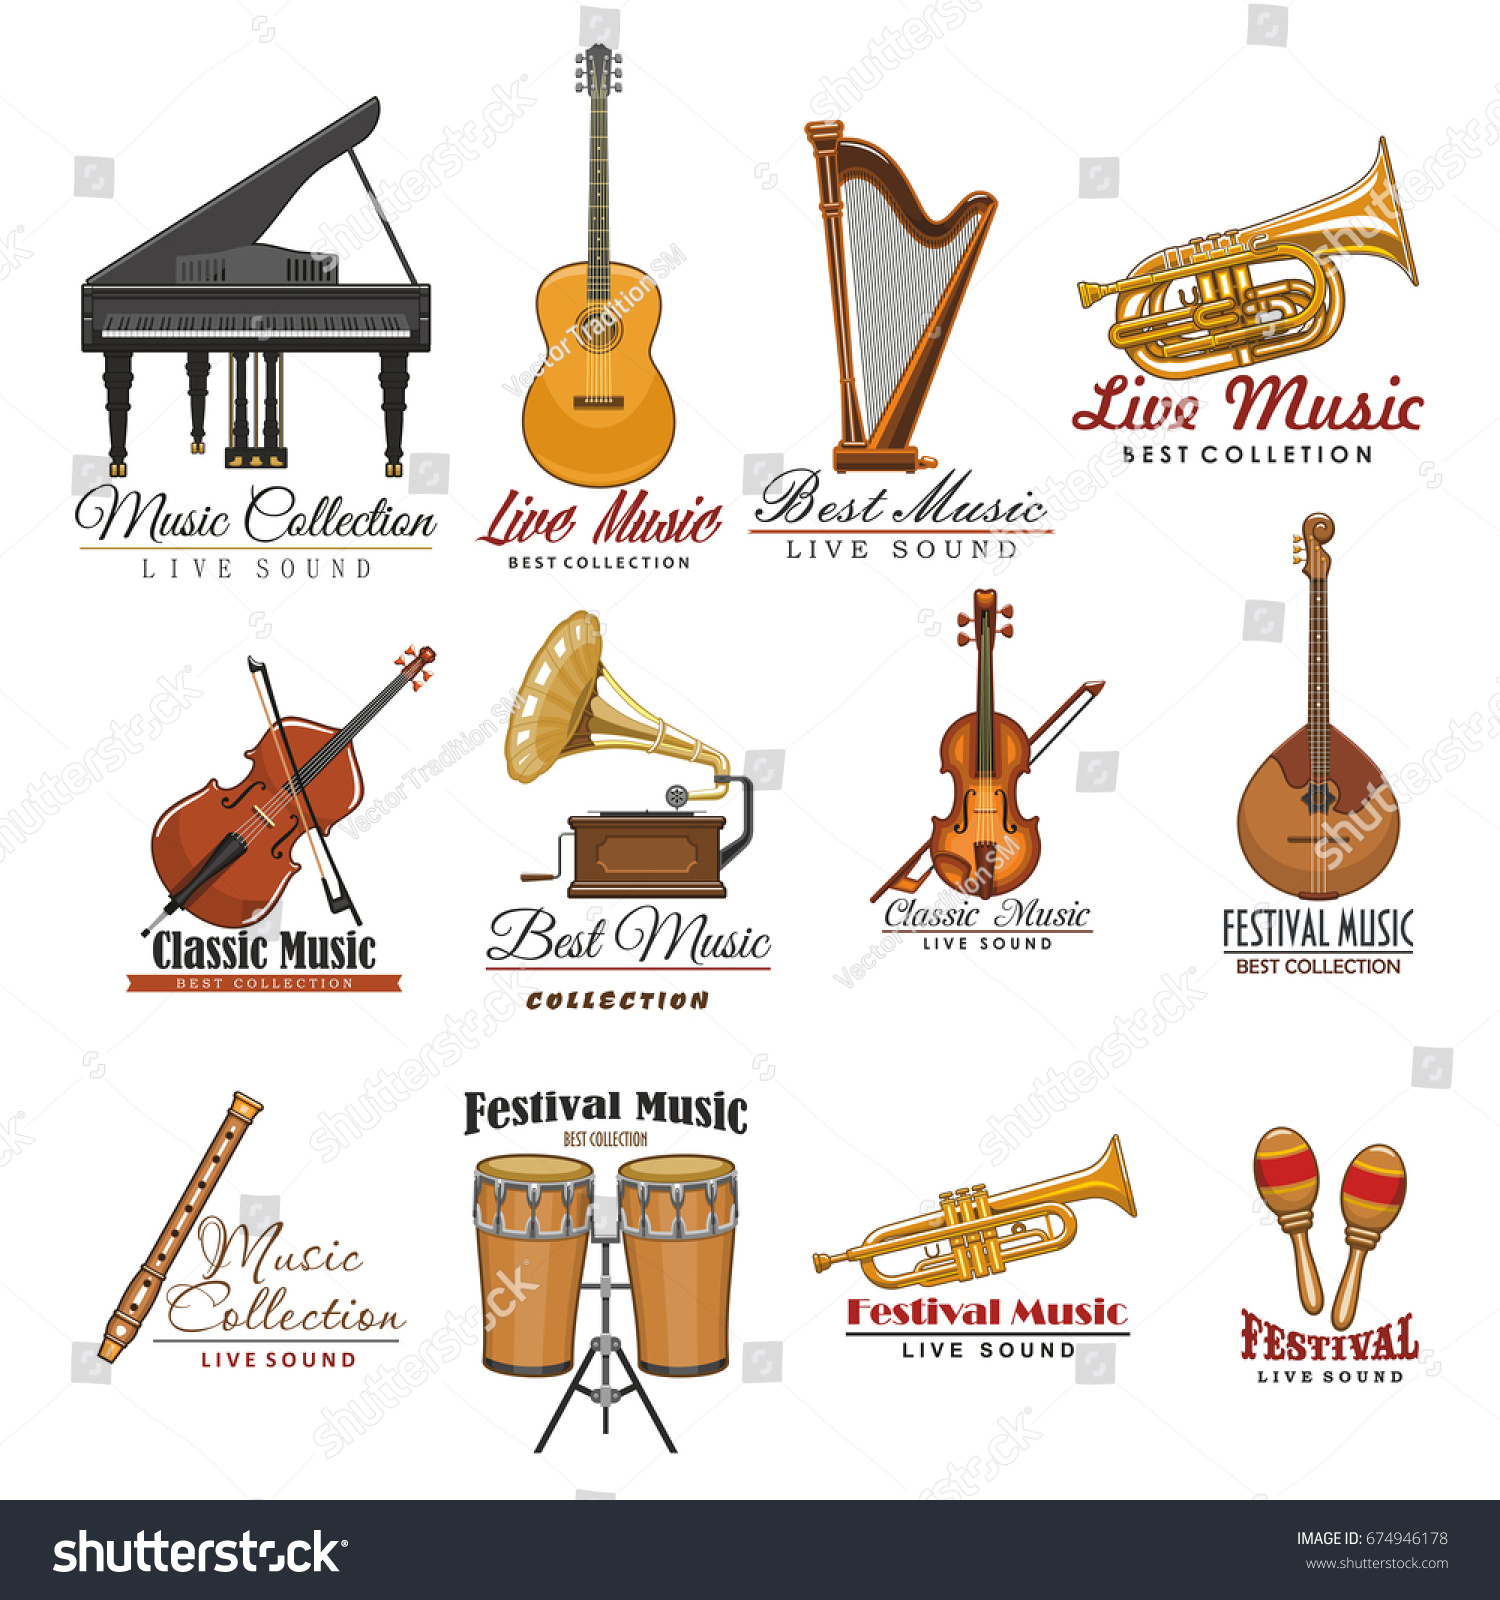 Music instrument festival live music symbols stock vector music instrument and festival of live music symbols guitar drum violin and harp biocorpaavc Gallery